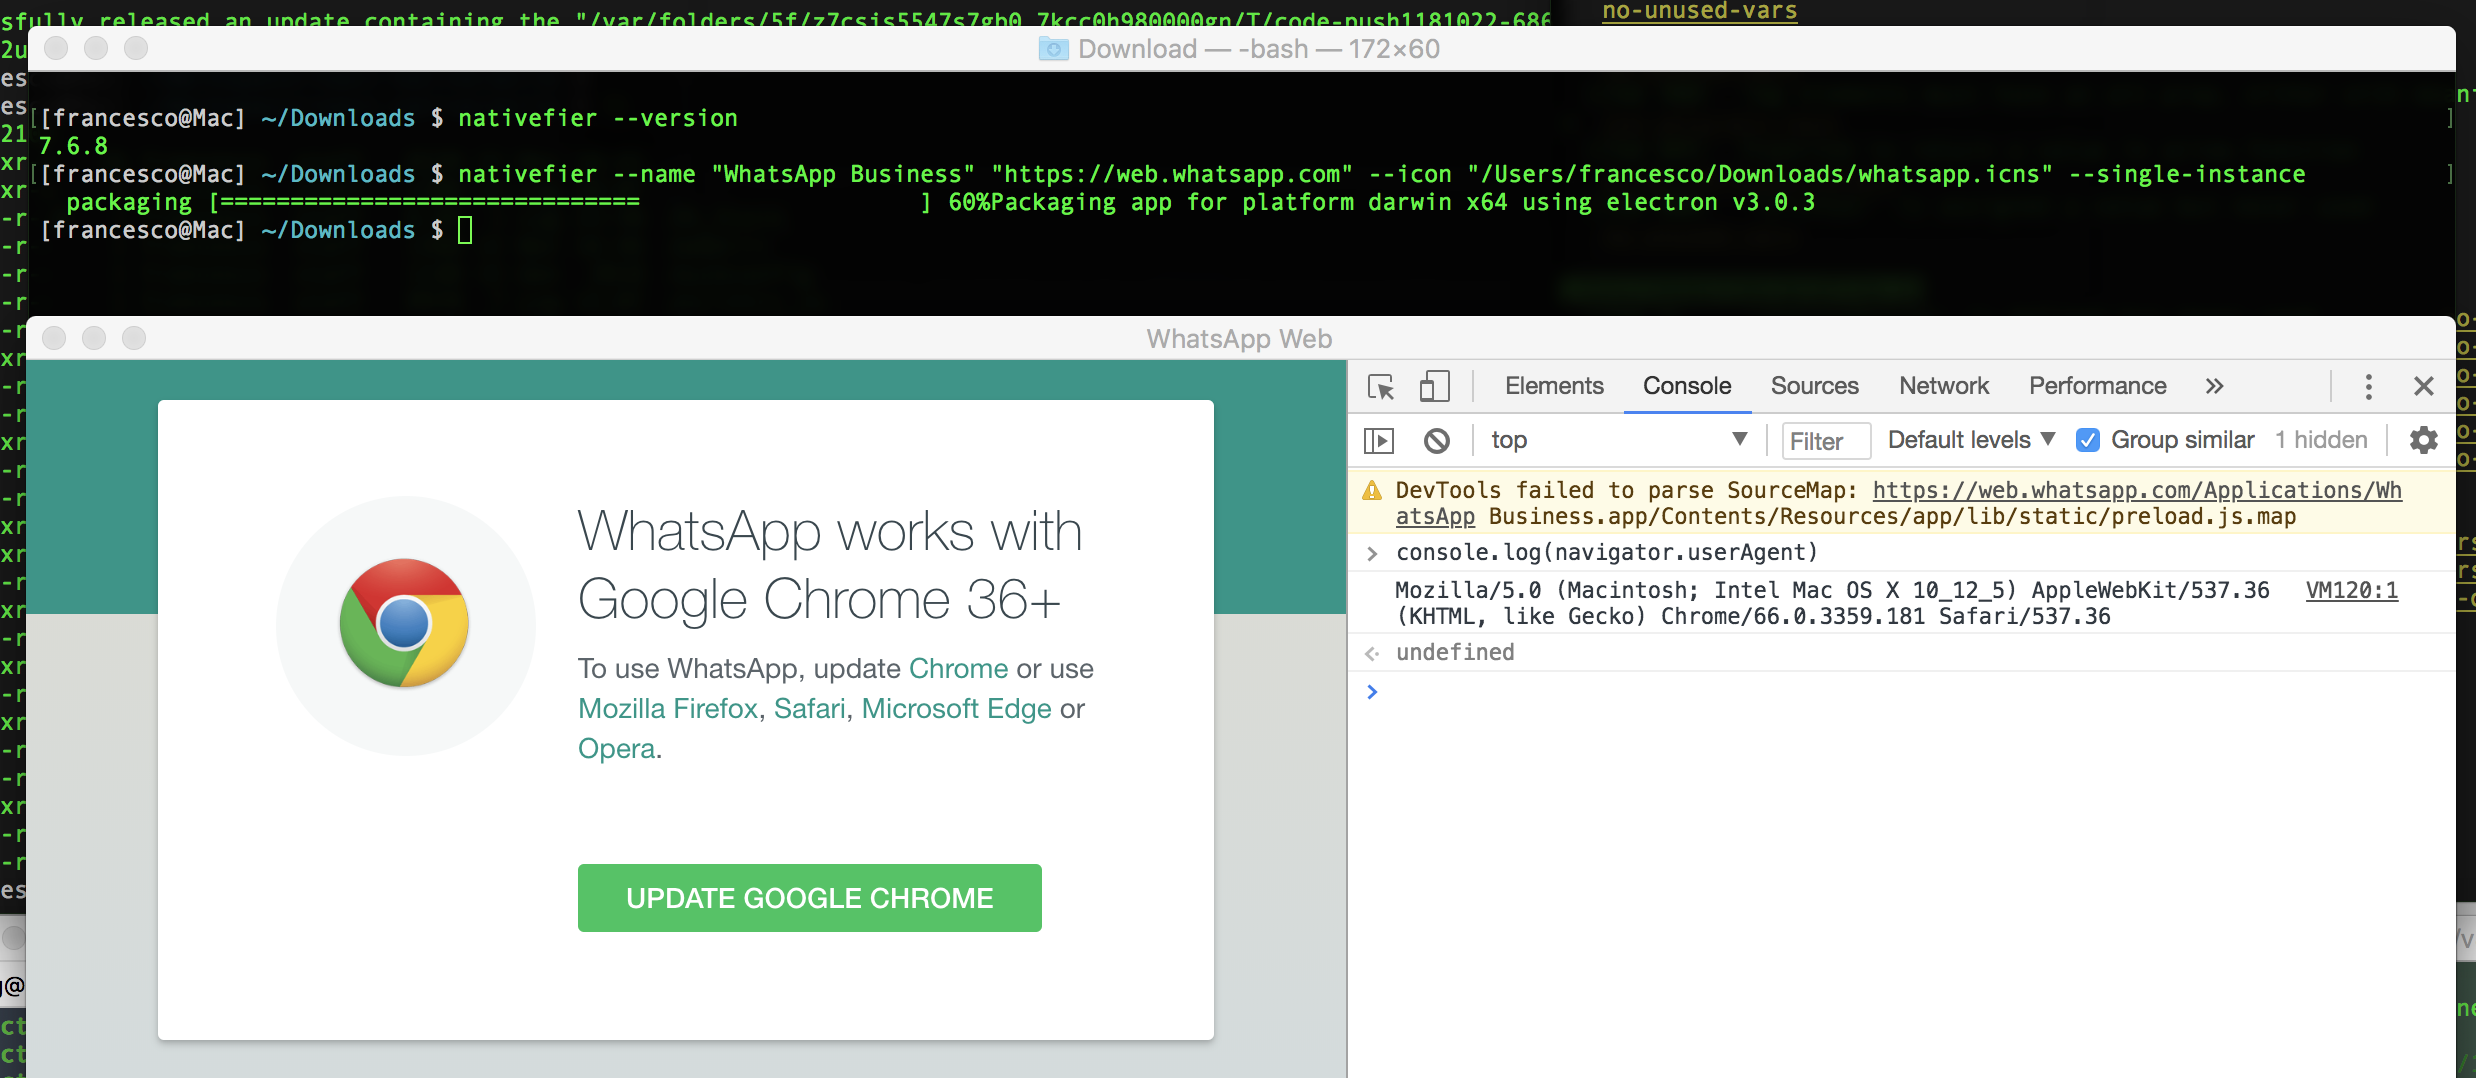 WhatsApp Web stopped working around 2018-11-30 - Asks for Google